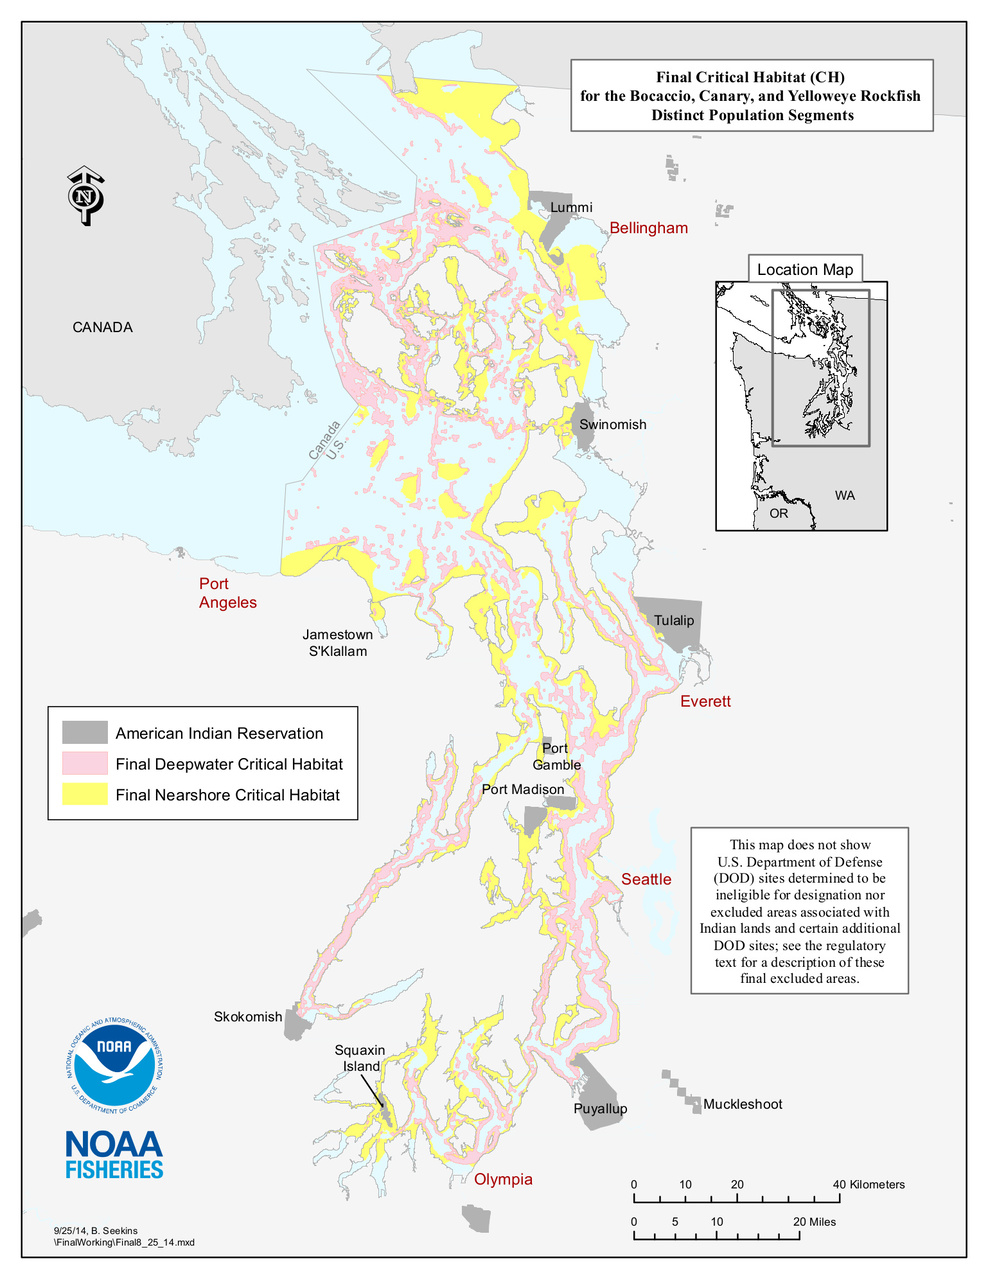 Map of the Critical Habitat area for Bocaccio, Canary, and Yelloweye Rockfish.